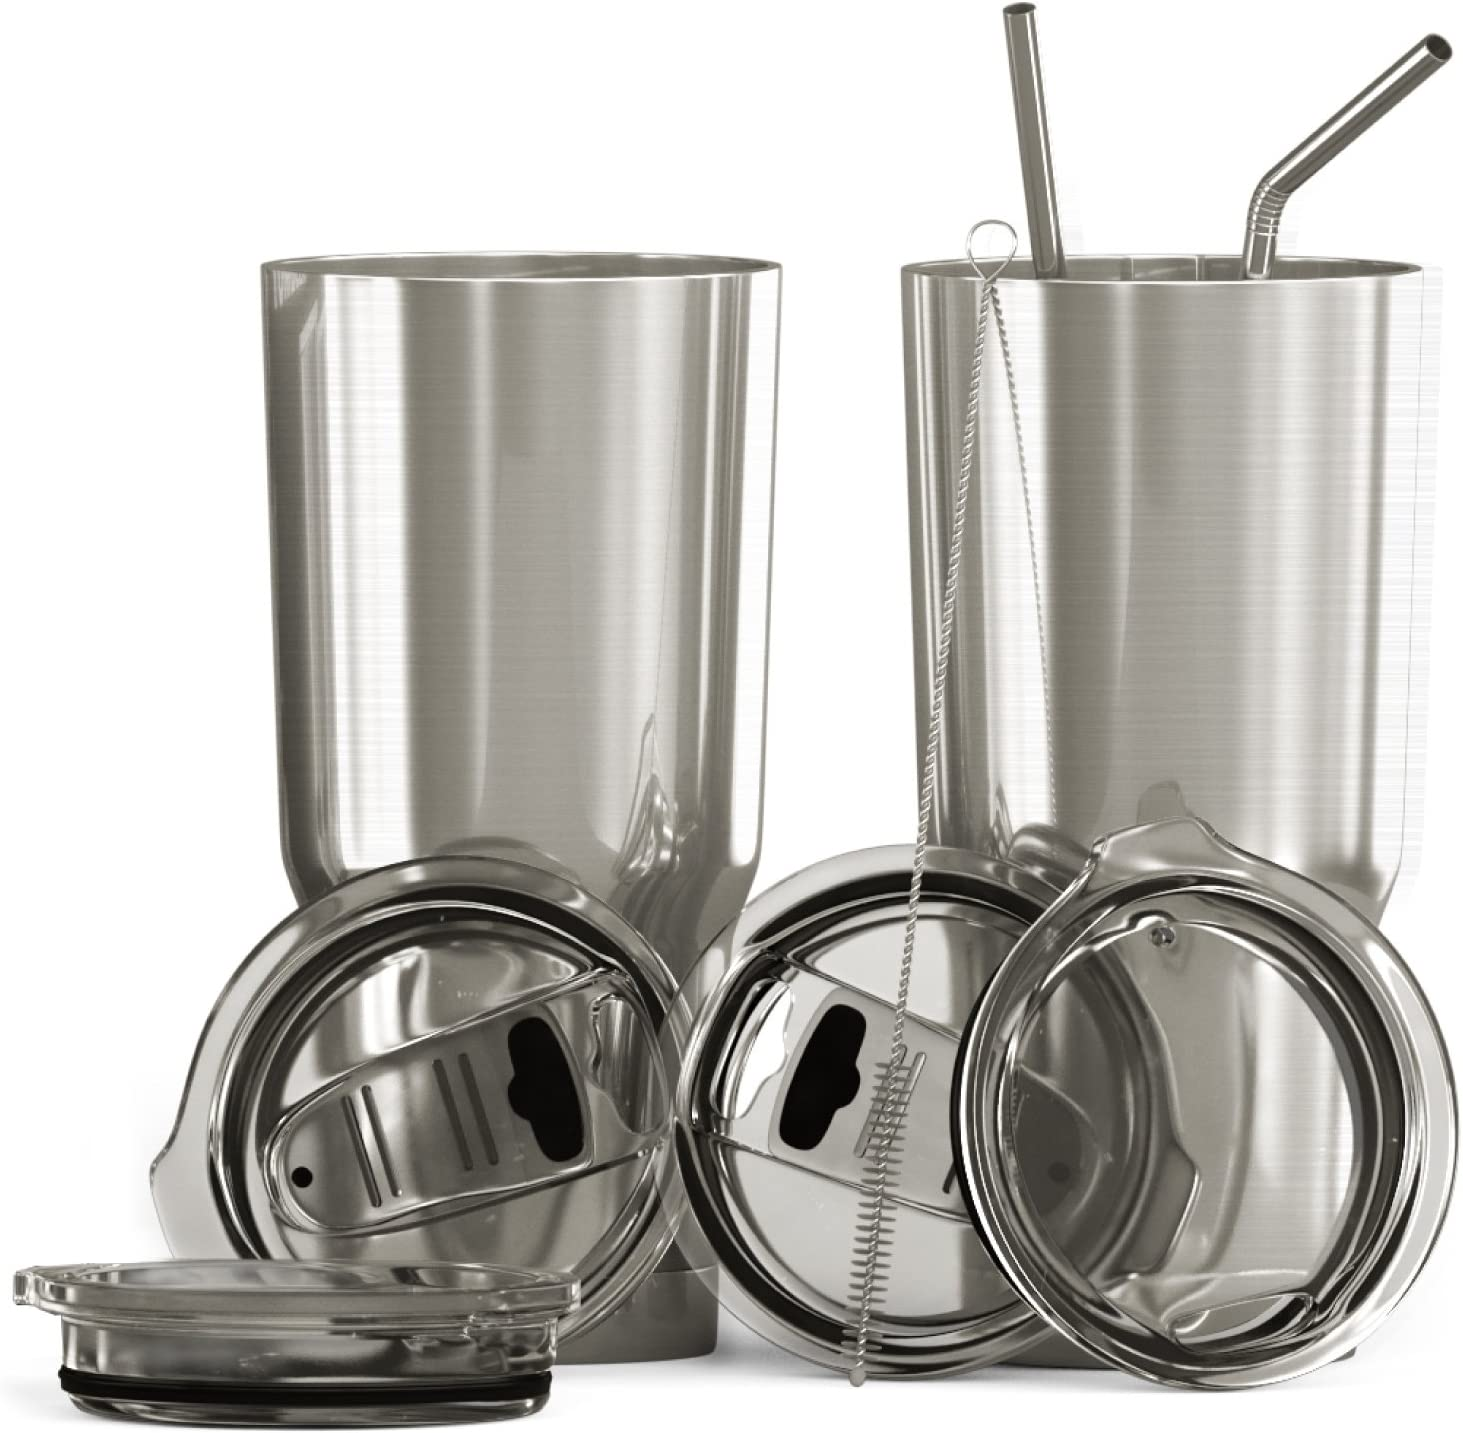 BluePeak Double Wall Stainless Steel Vacuum Insulated Tumbler Set, 2-Pack. Includes Sipping Lids, Spill-Proof Sliding Lids, Straws, Cleaning Brush & Gift Box (30oz, Stainless Steel)